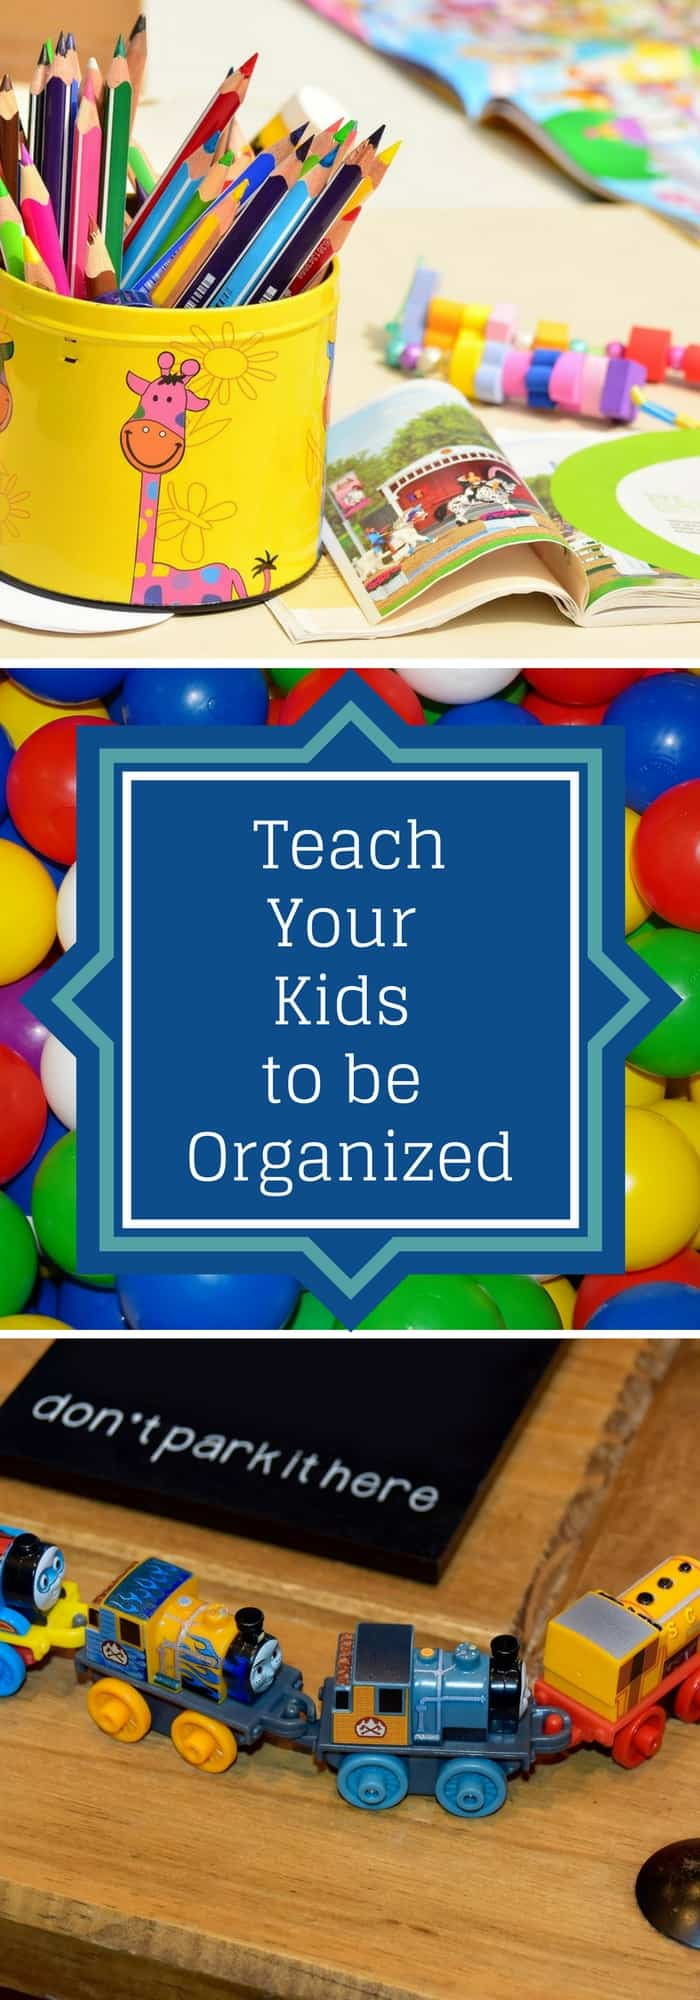 How to teach your kids to be organized!